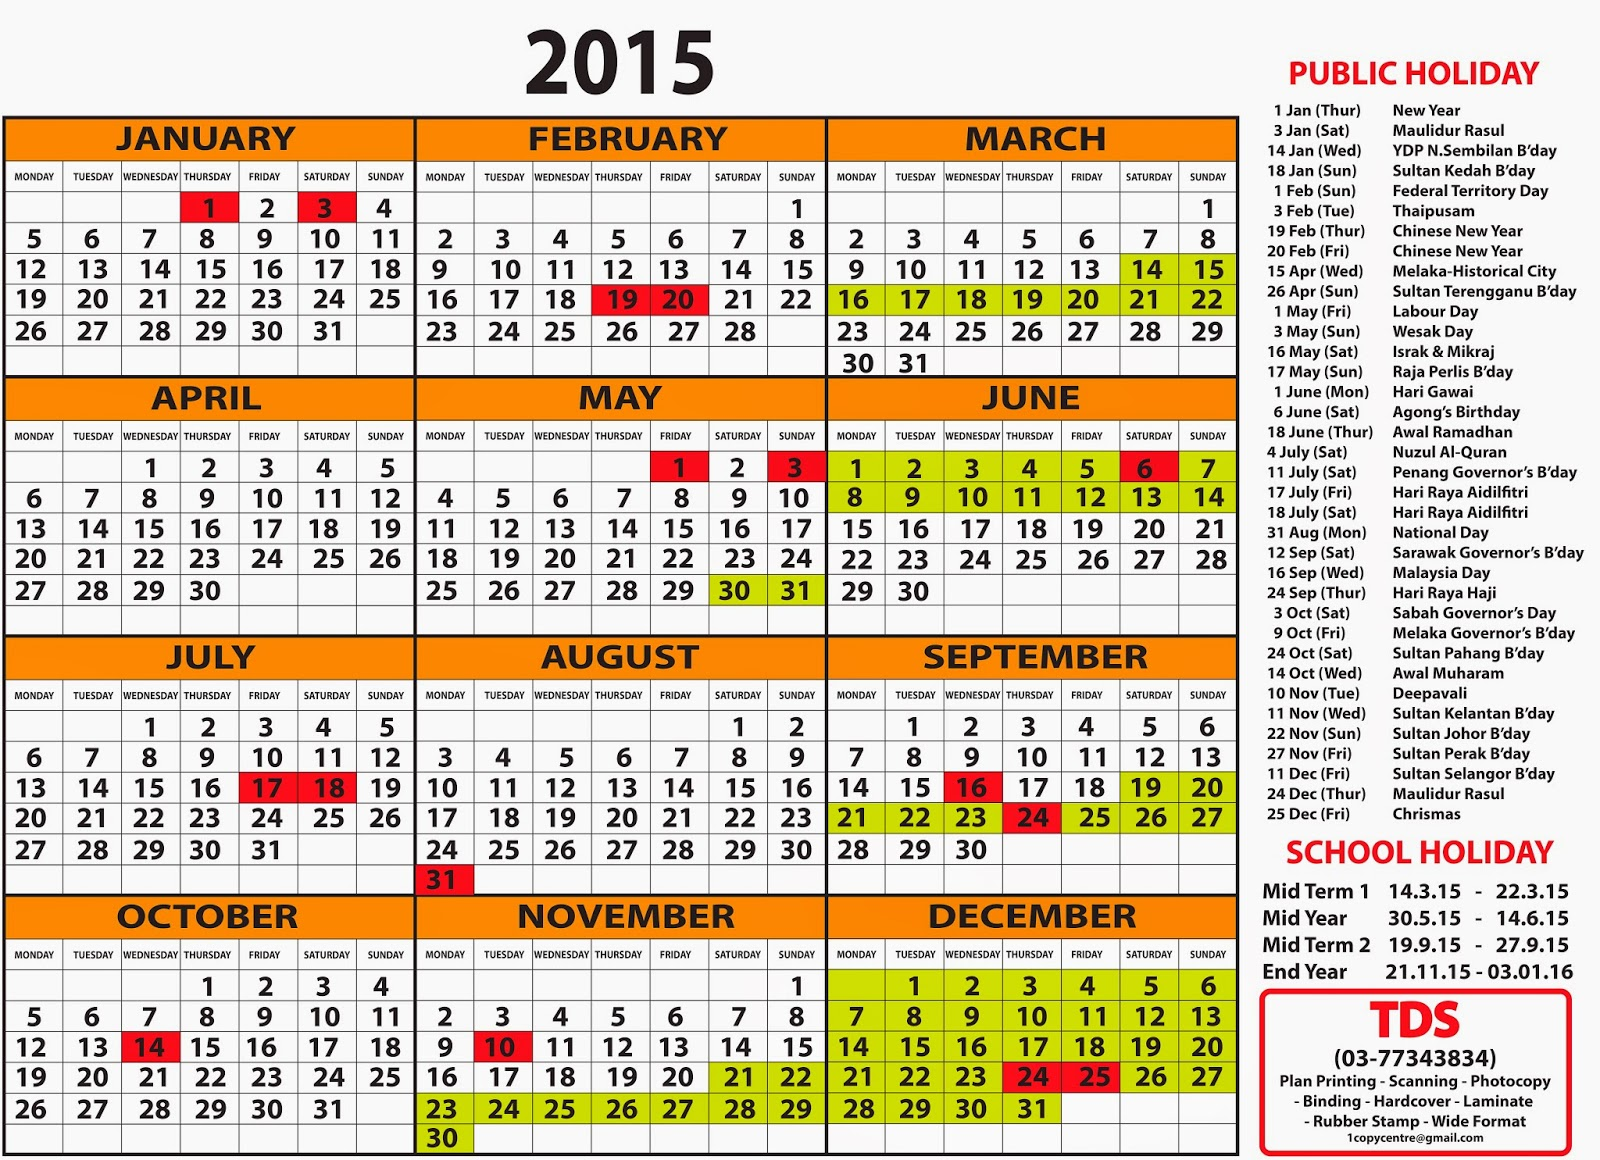 Holiday dates 2015